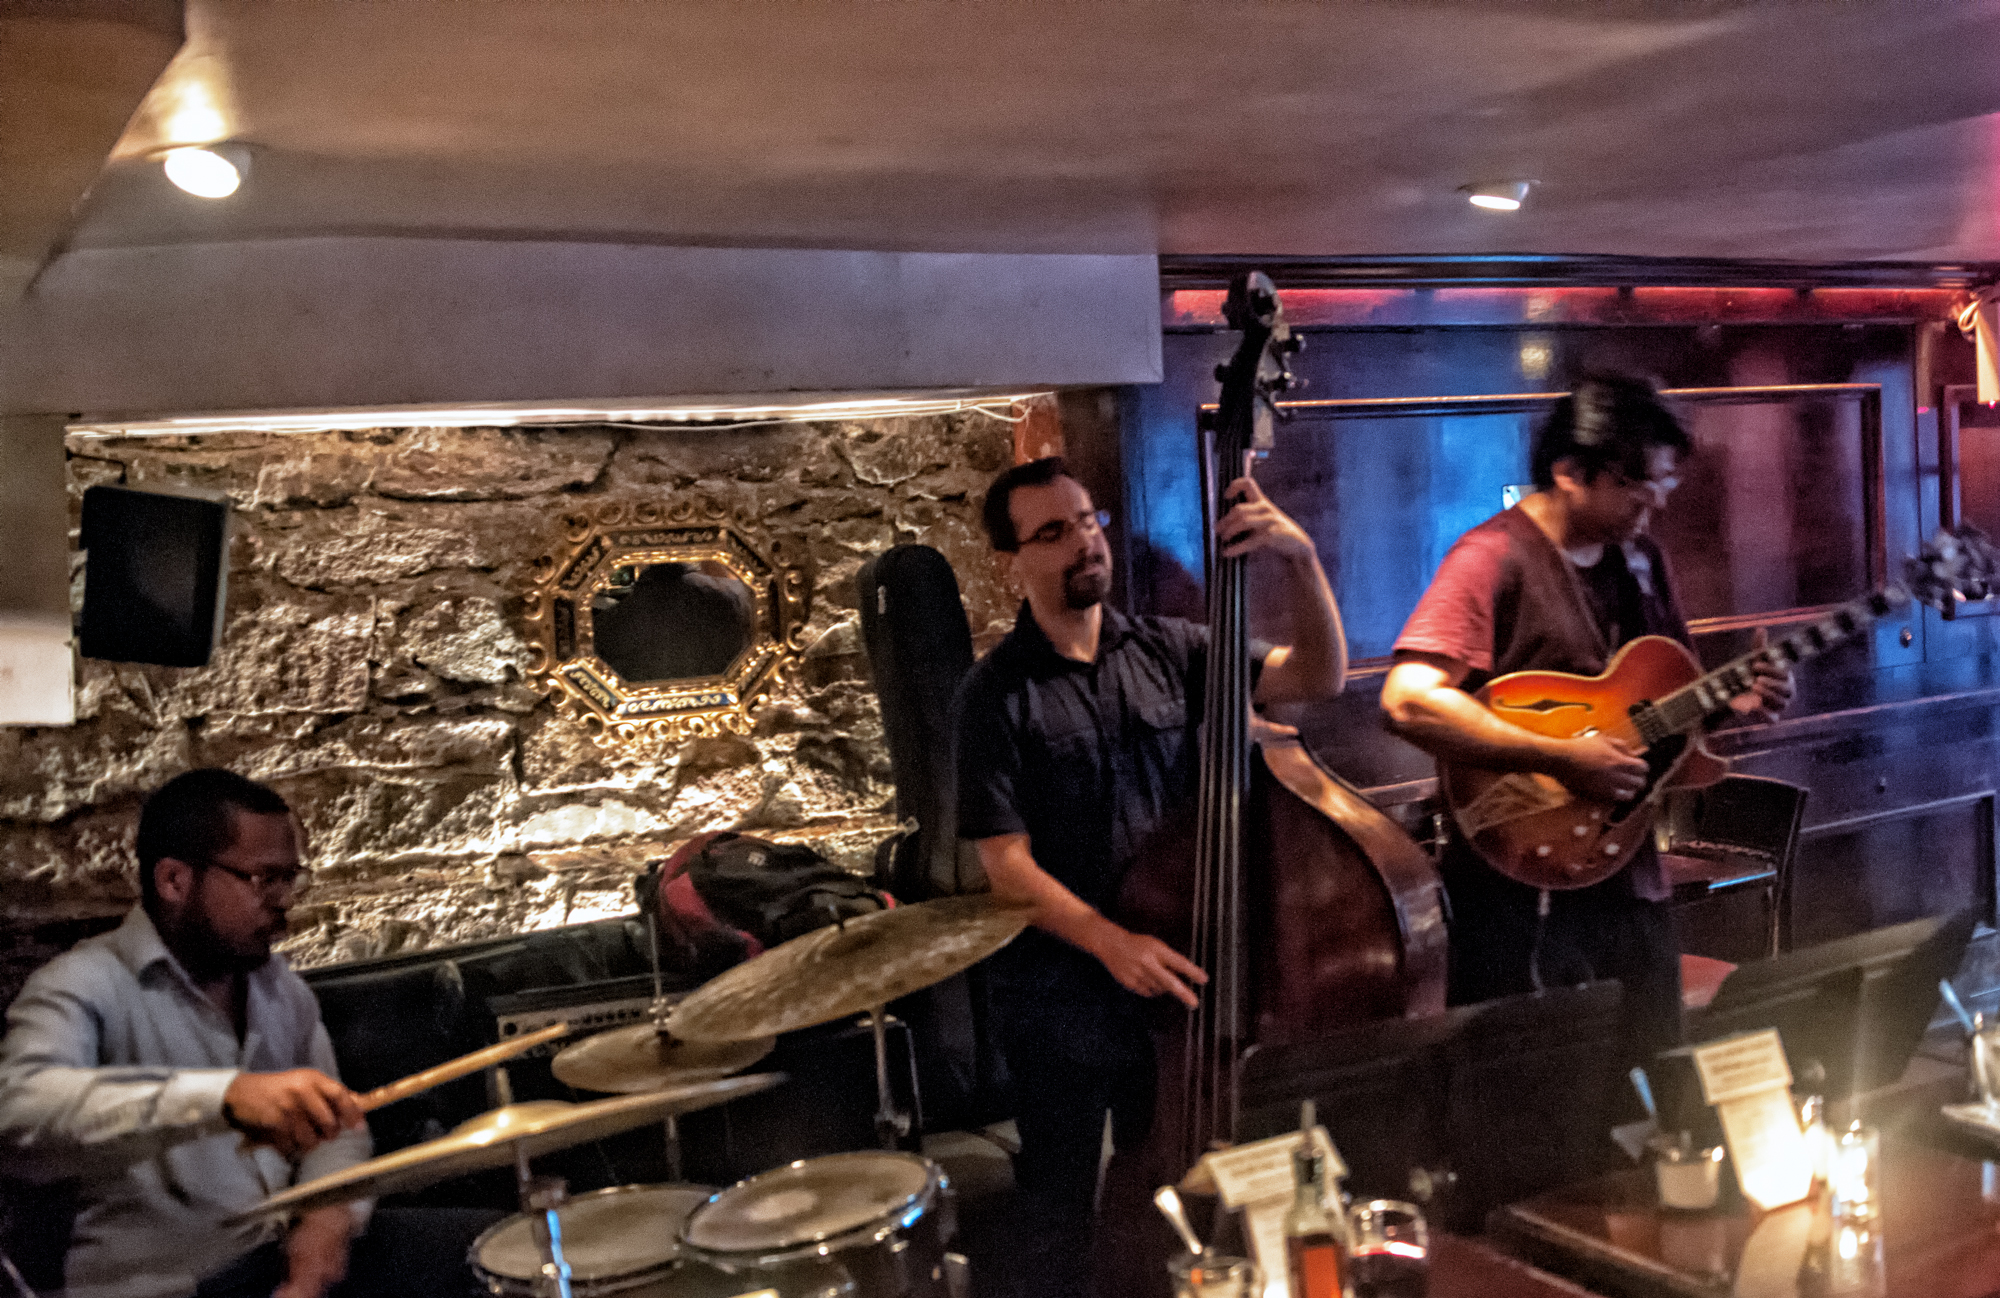 Russell Carter, Thomas Kneeland and Rez Abbasi at the Bar Next Door in New York City